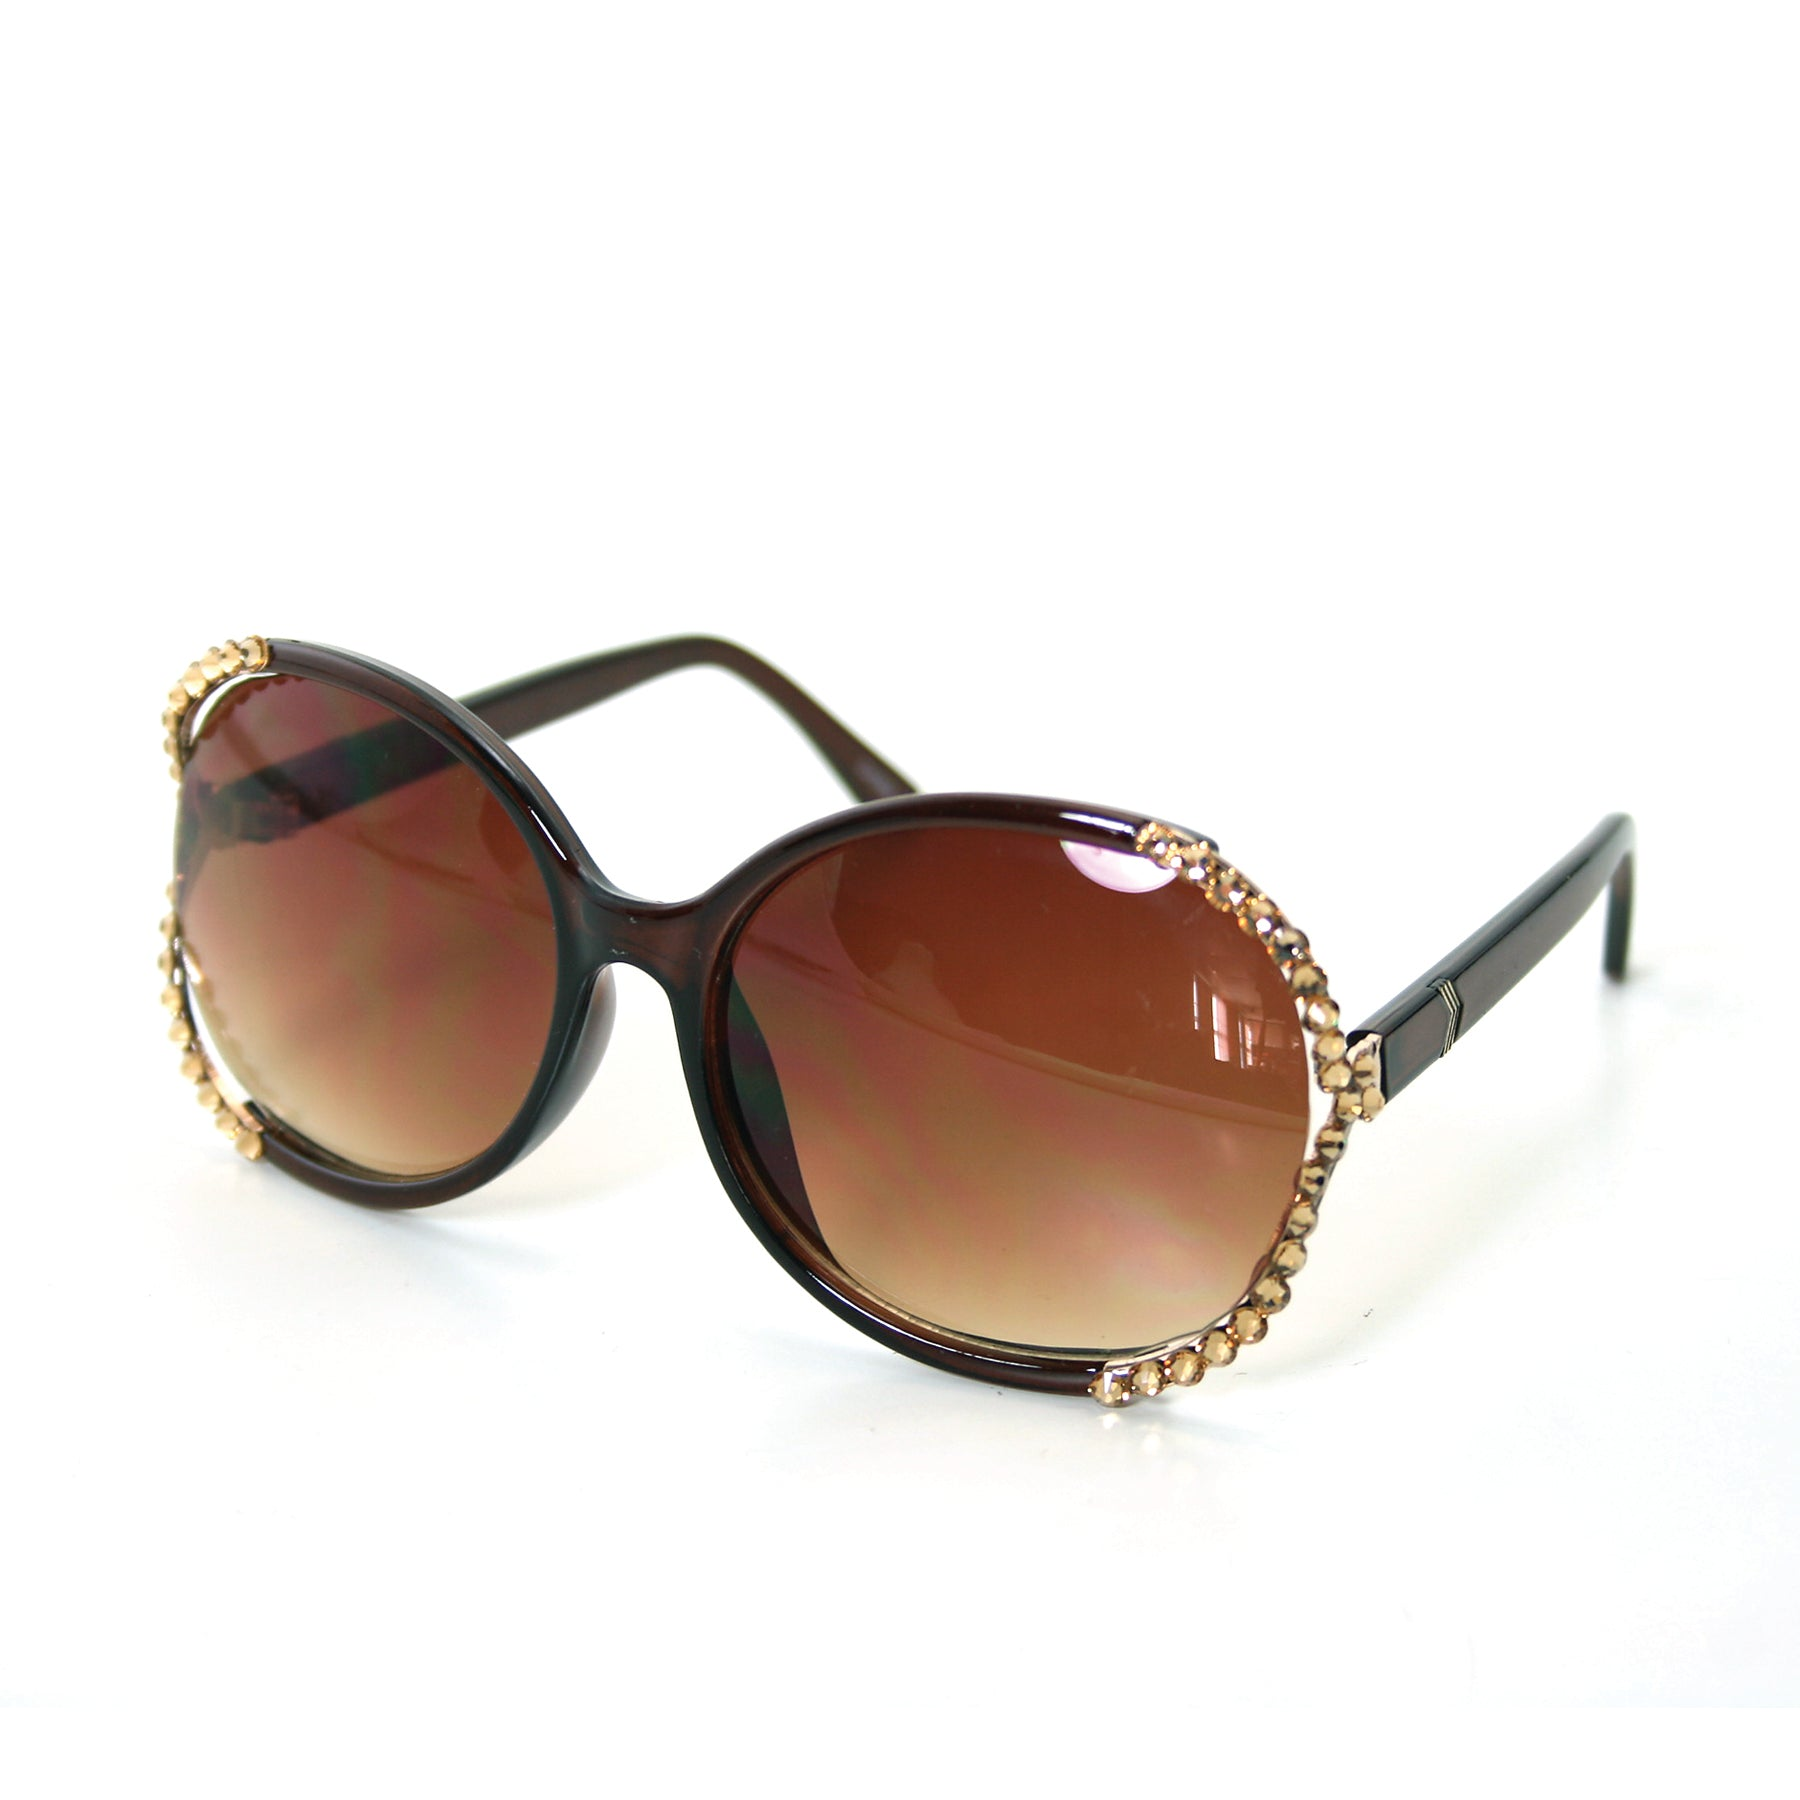 Sunglasses Made with Swarovski Elements, brown color, side view